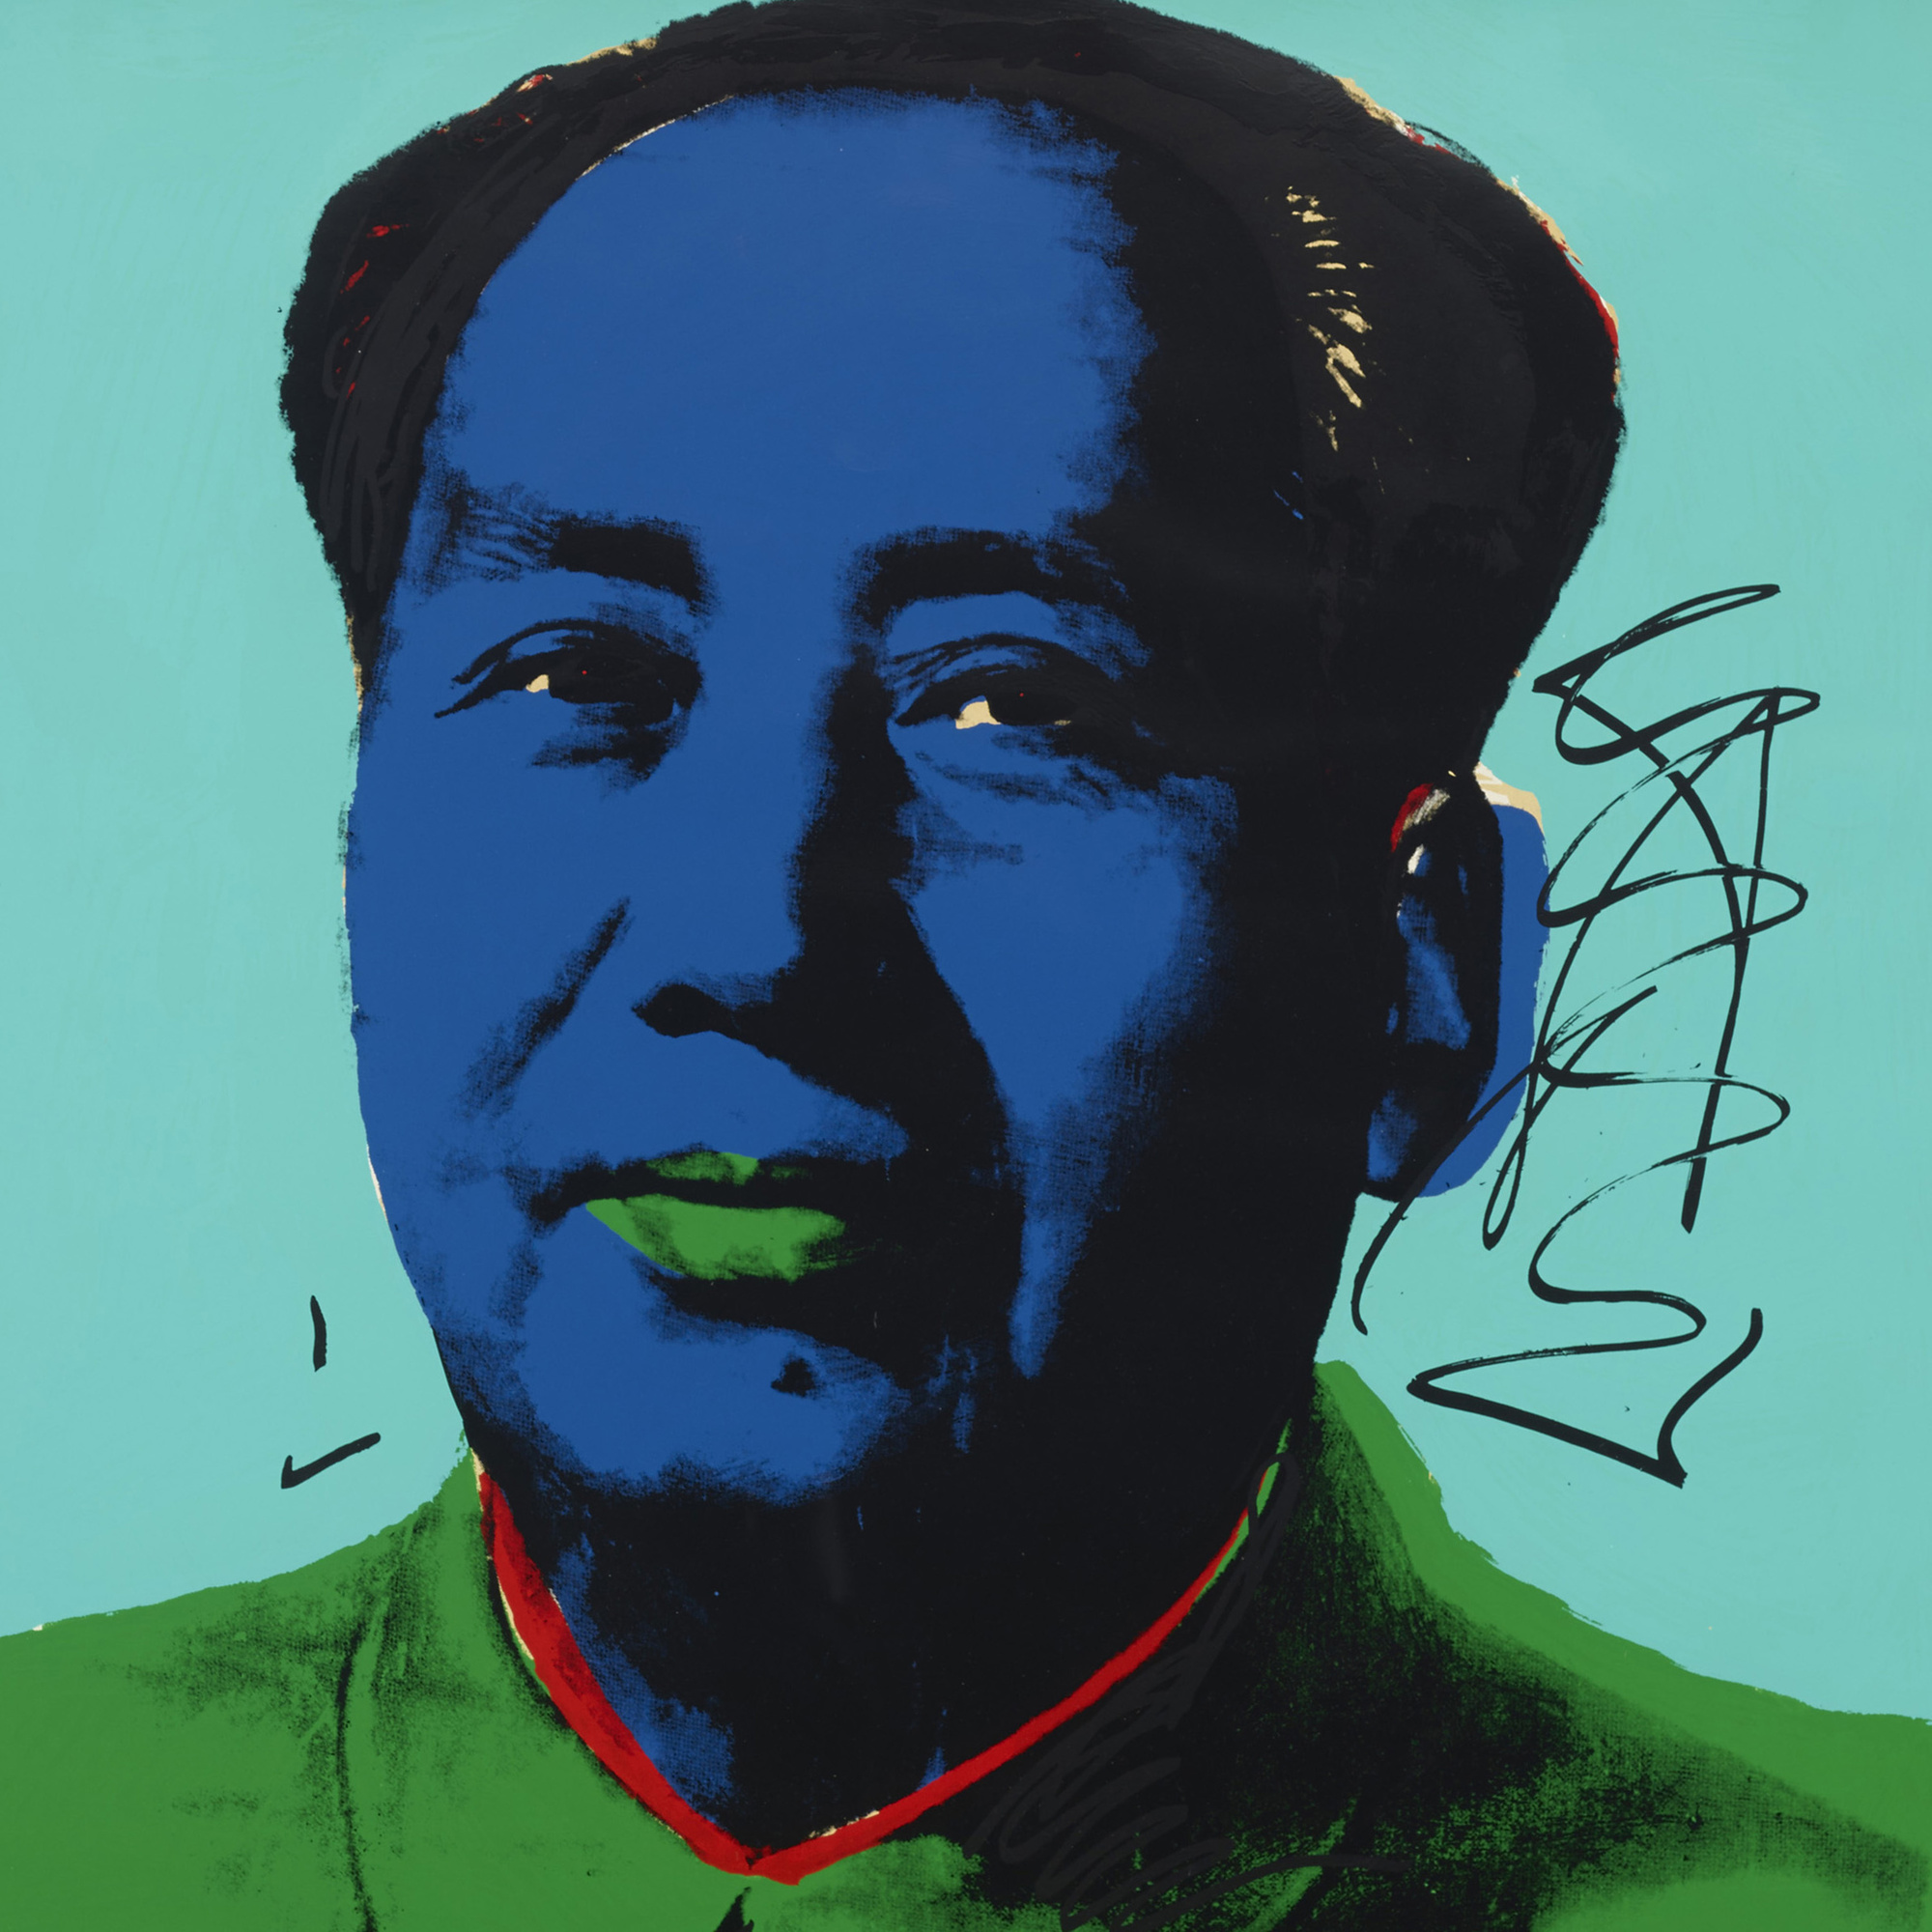 121: Andy Warhol / Mao (2 of 2)